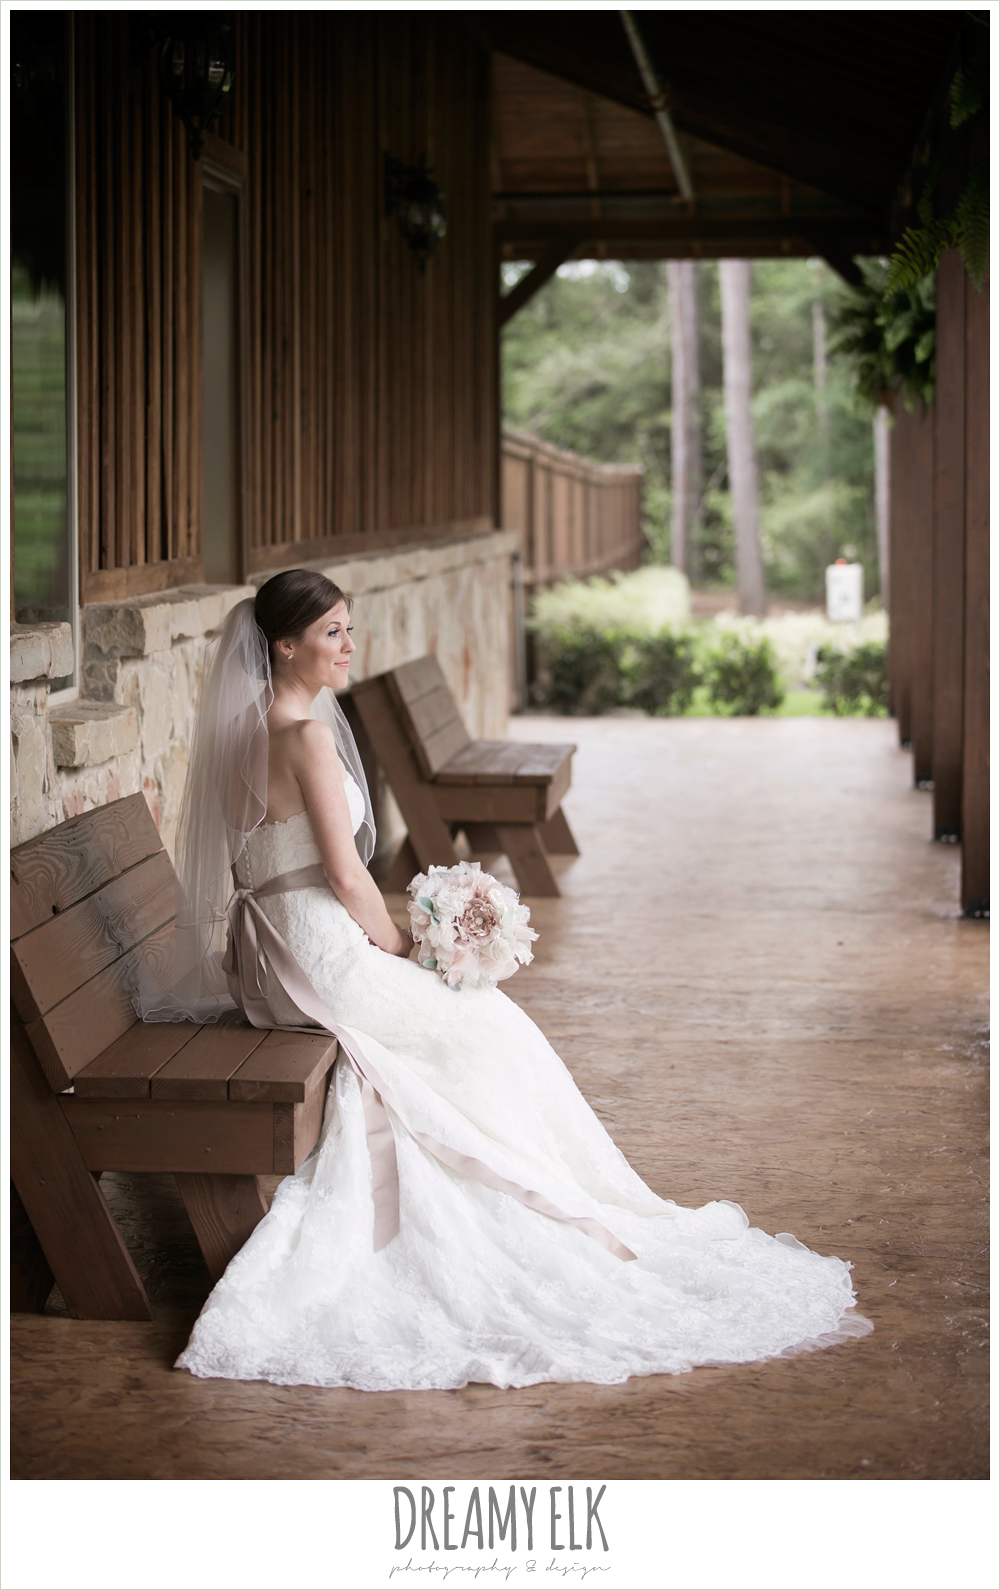 strapless lace pronovias wedding dress, rhinestone blush belt, bridal portrait, bride, navy gray and white wedding, rainy april spring wedding at crystal springs, houston, texas {dreamy elk photography and design}